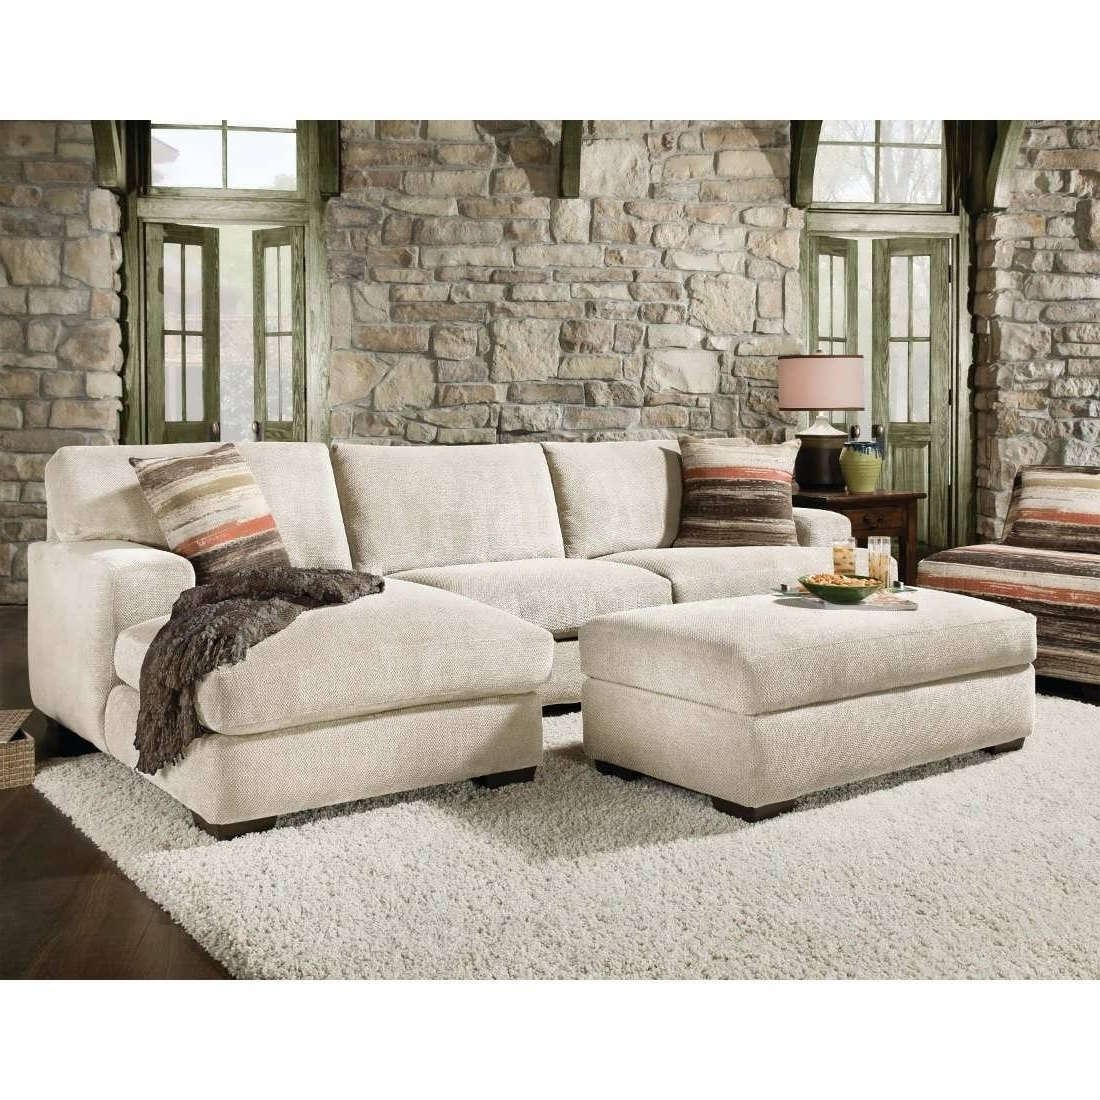 Cream Chaise Sofas Within Preferred Sofa : Double Chaise Sofa Sleeper Sofa With Chaise Grey Sectional (View 1 of 15)